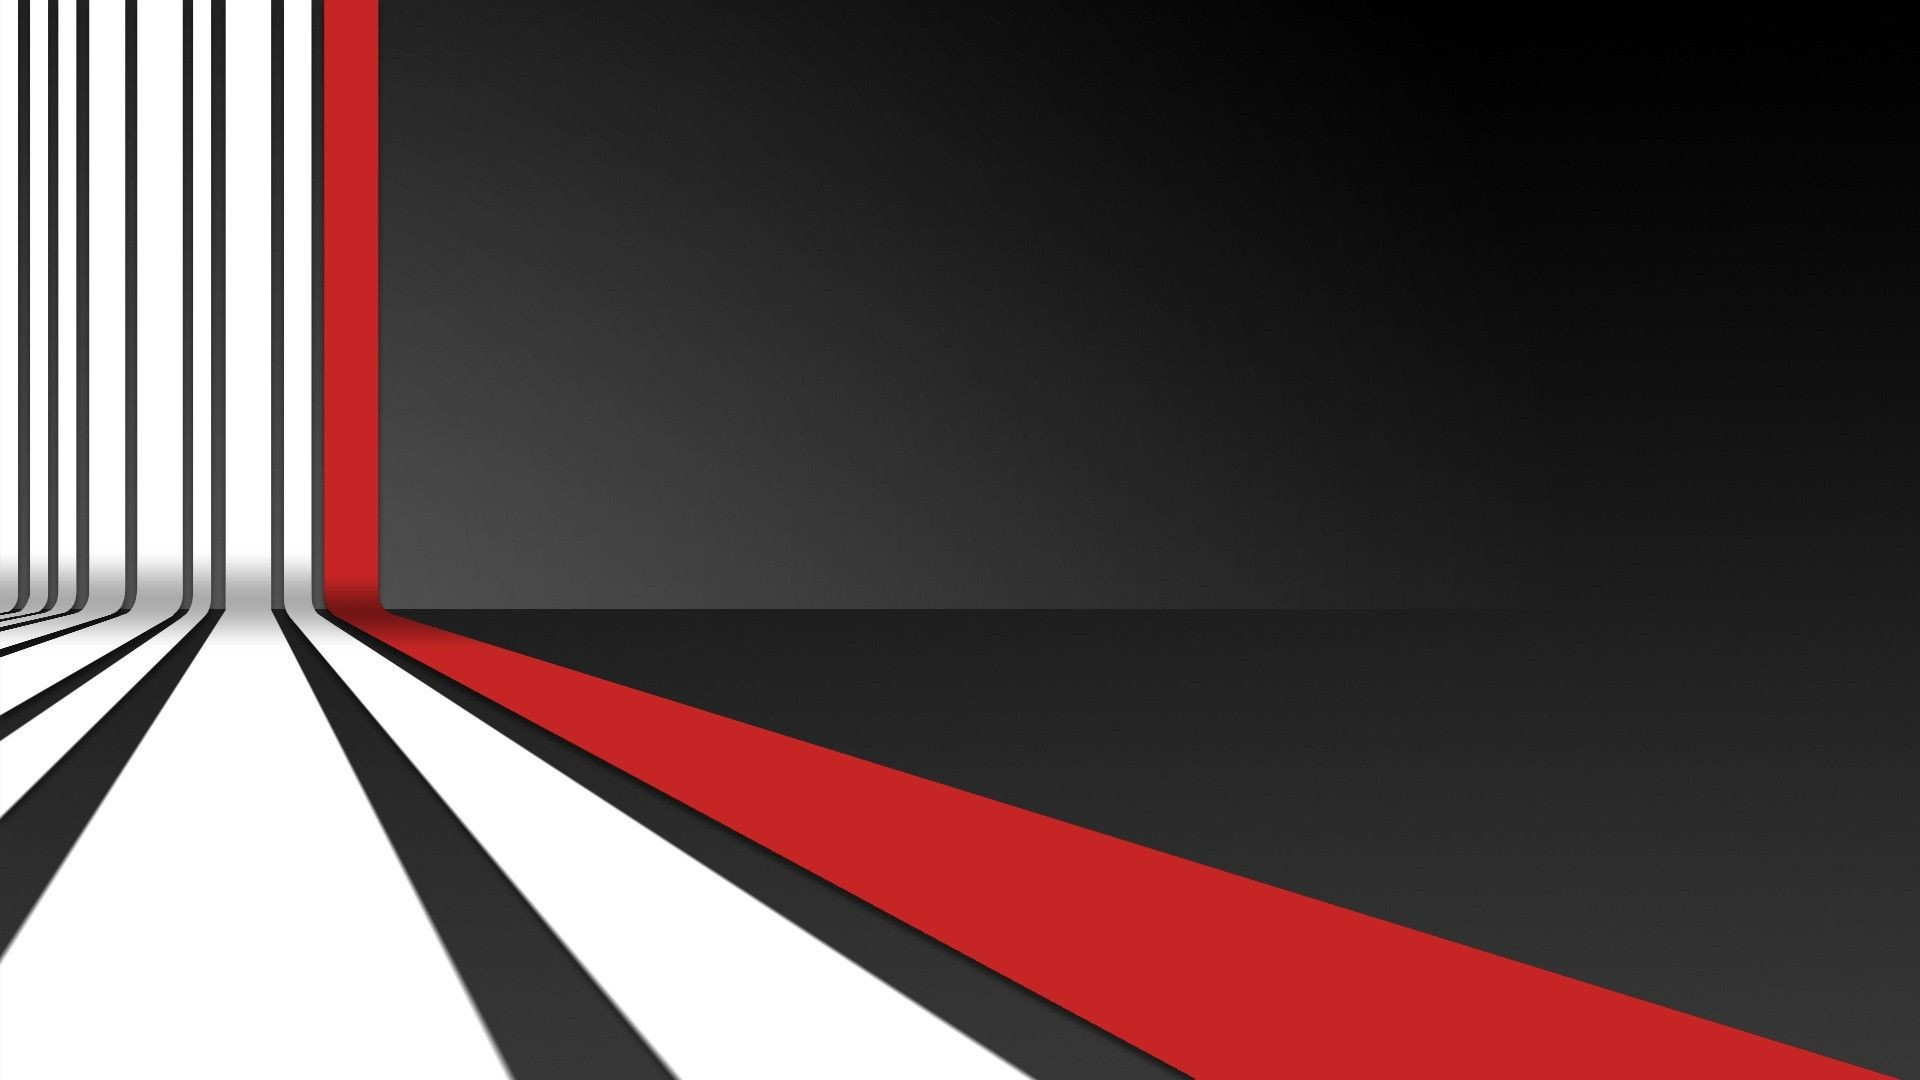 Wallpapers For > Red White Black Abstract Background